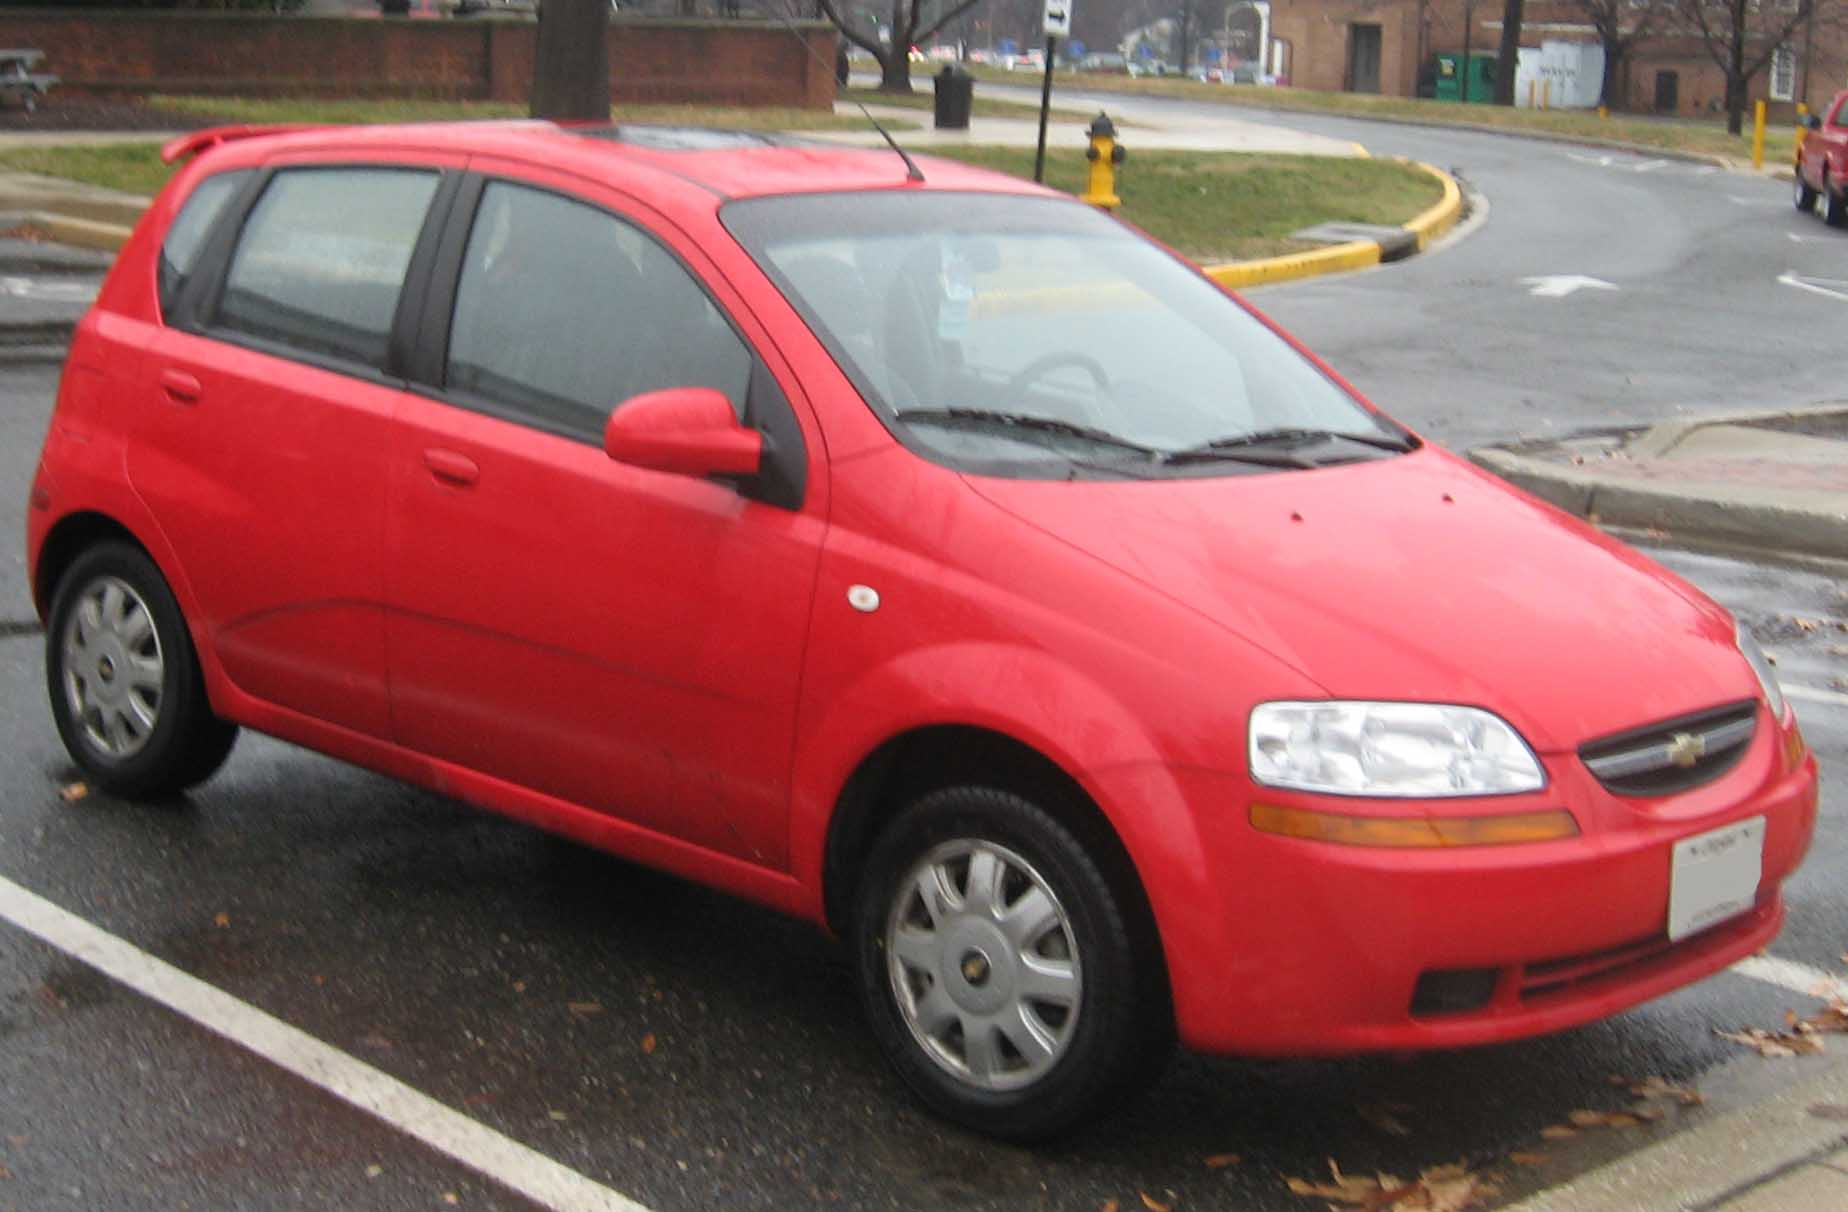 FileChevrolet Aveo LT hatchjpg  Wikimedia Commons